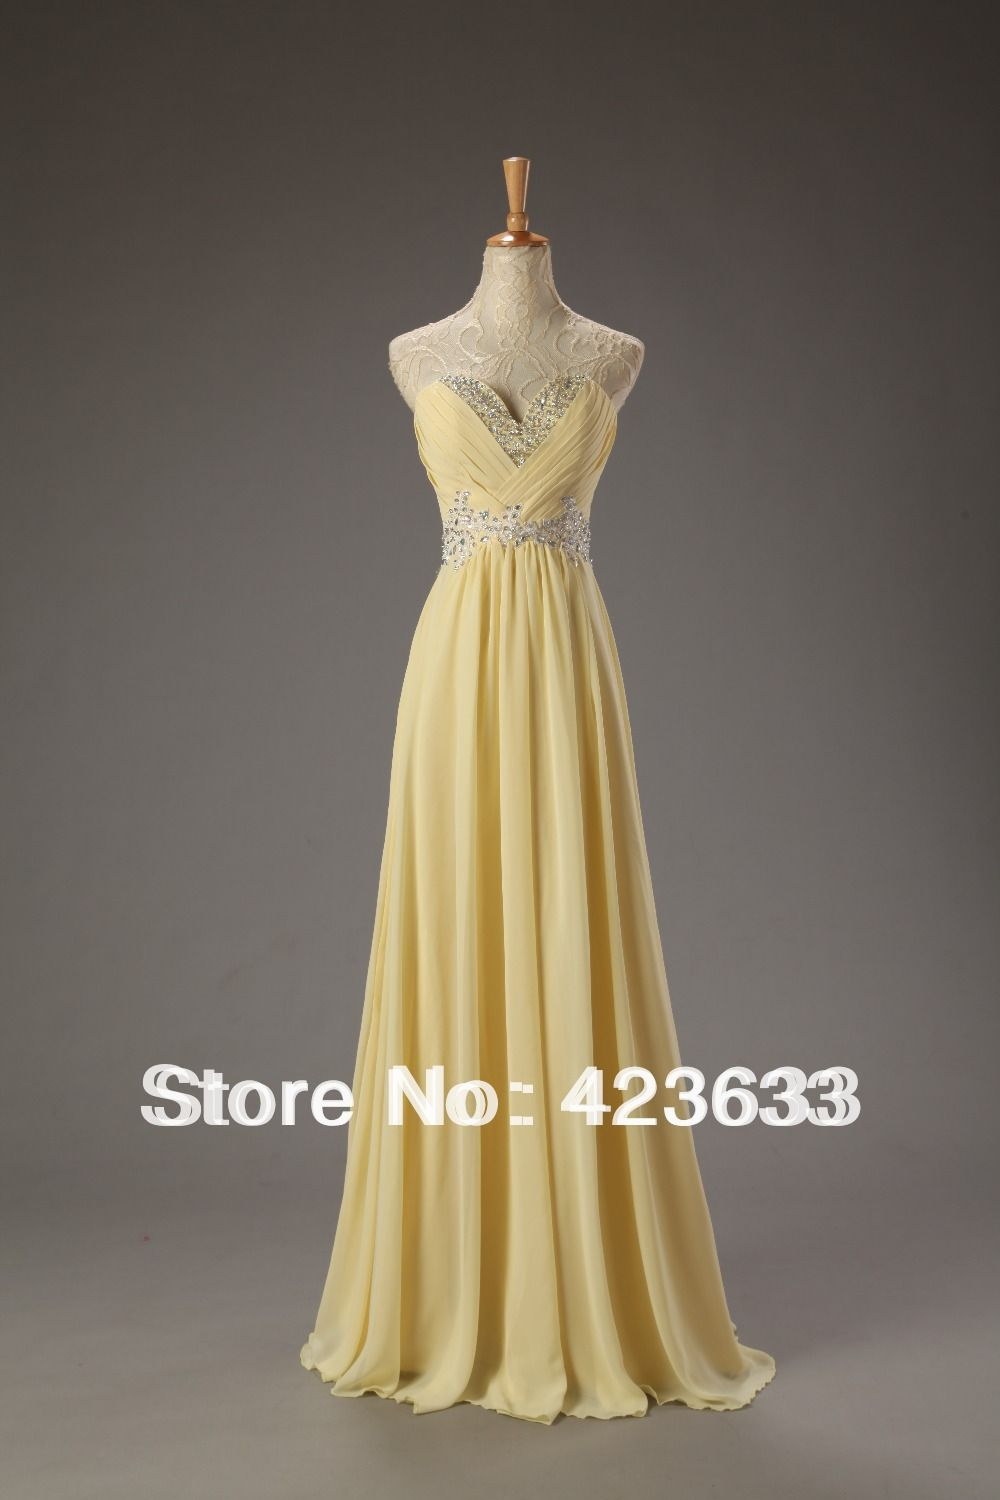 Dresses chiffon light yellow dress prom dress prom dresses